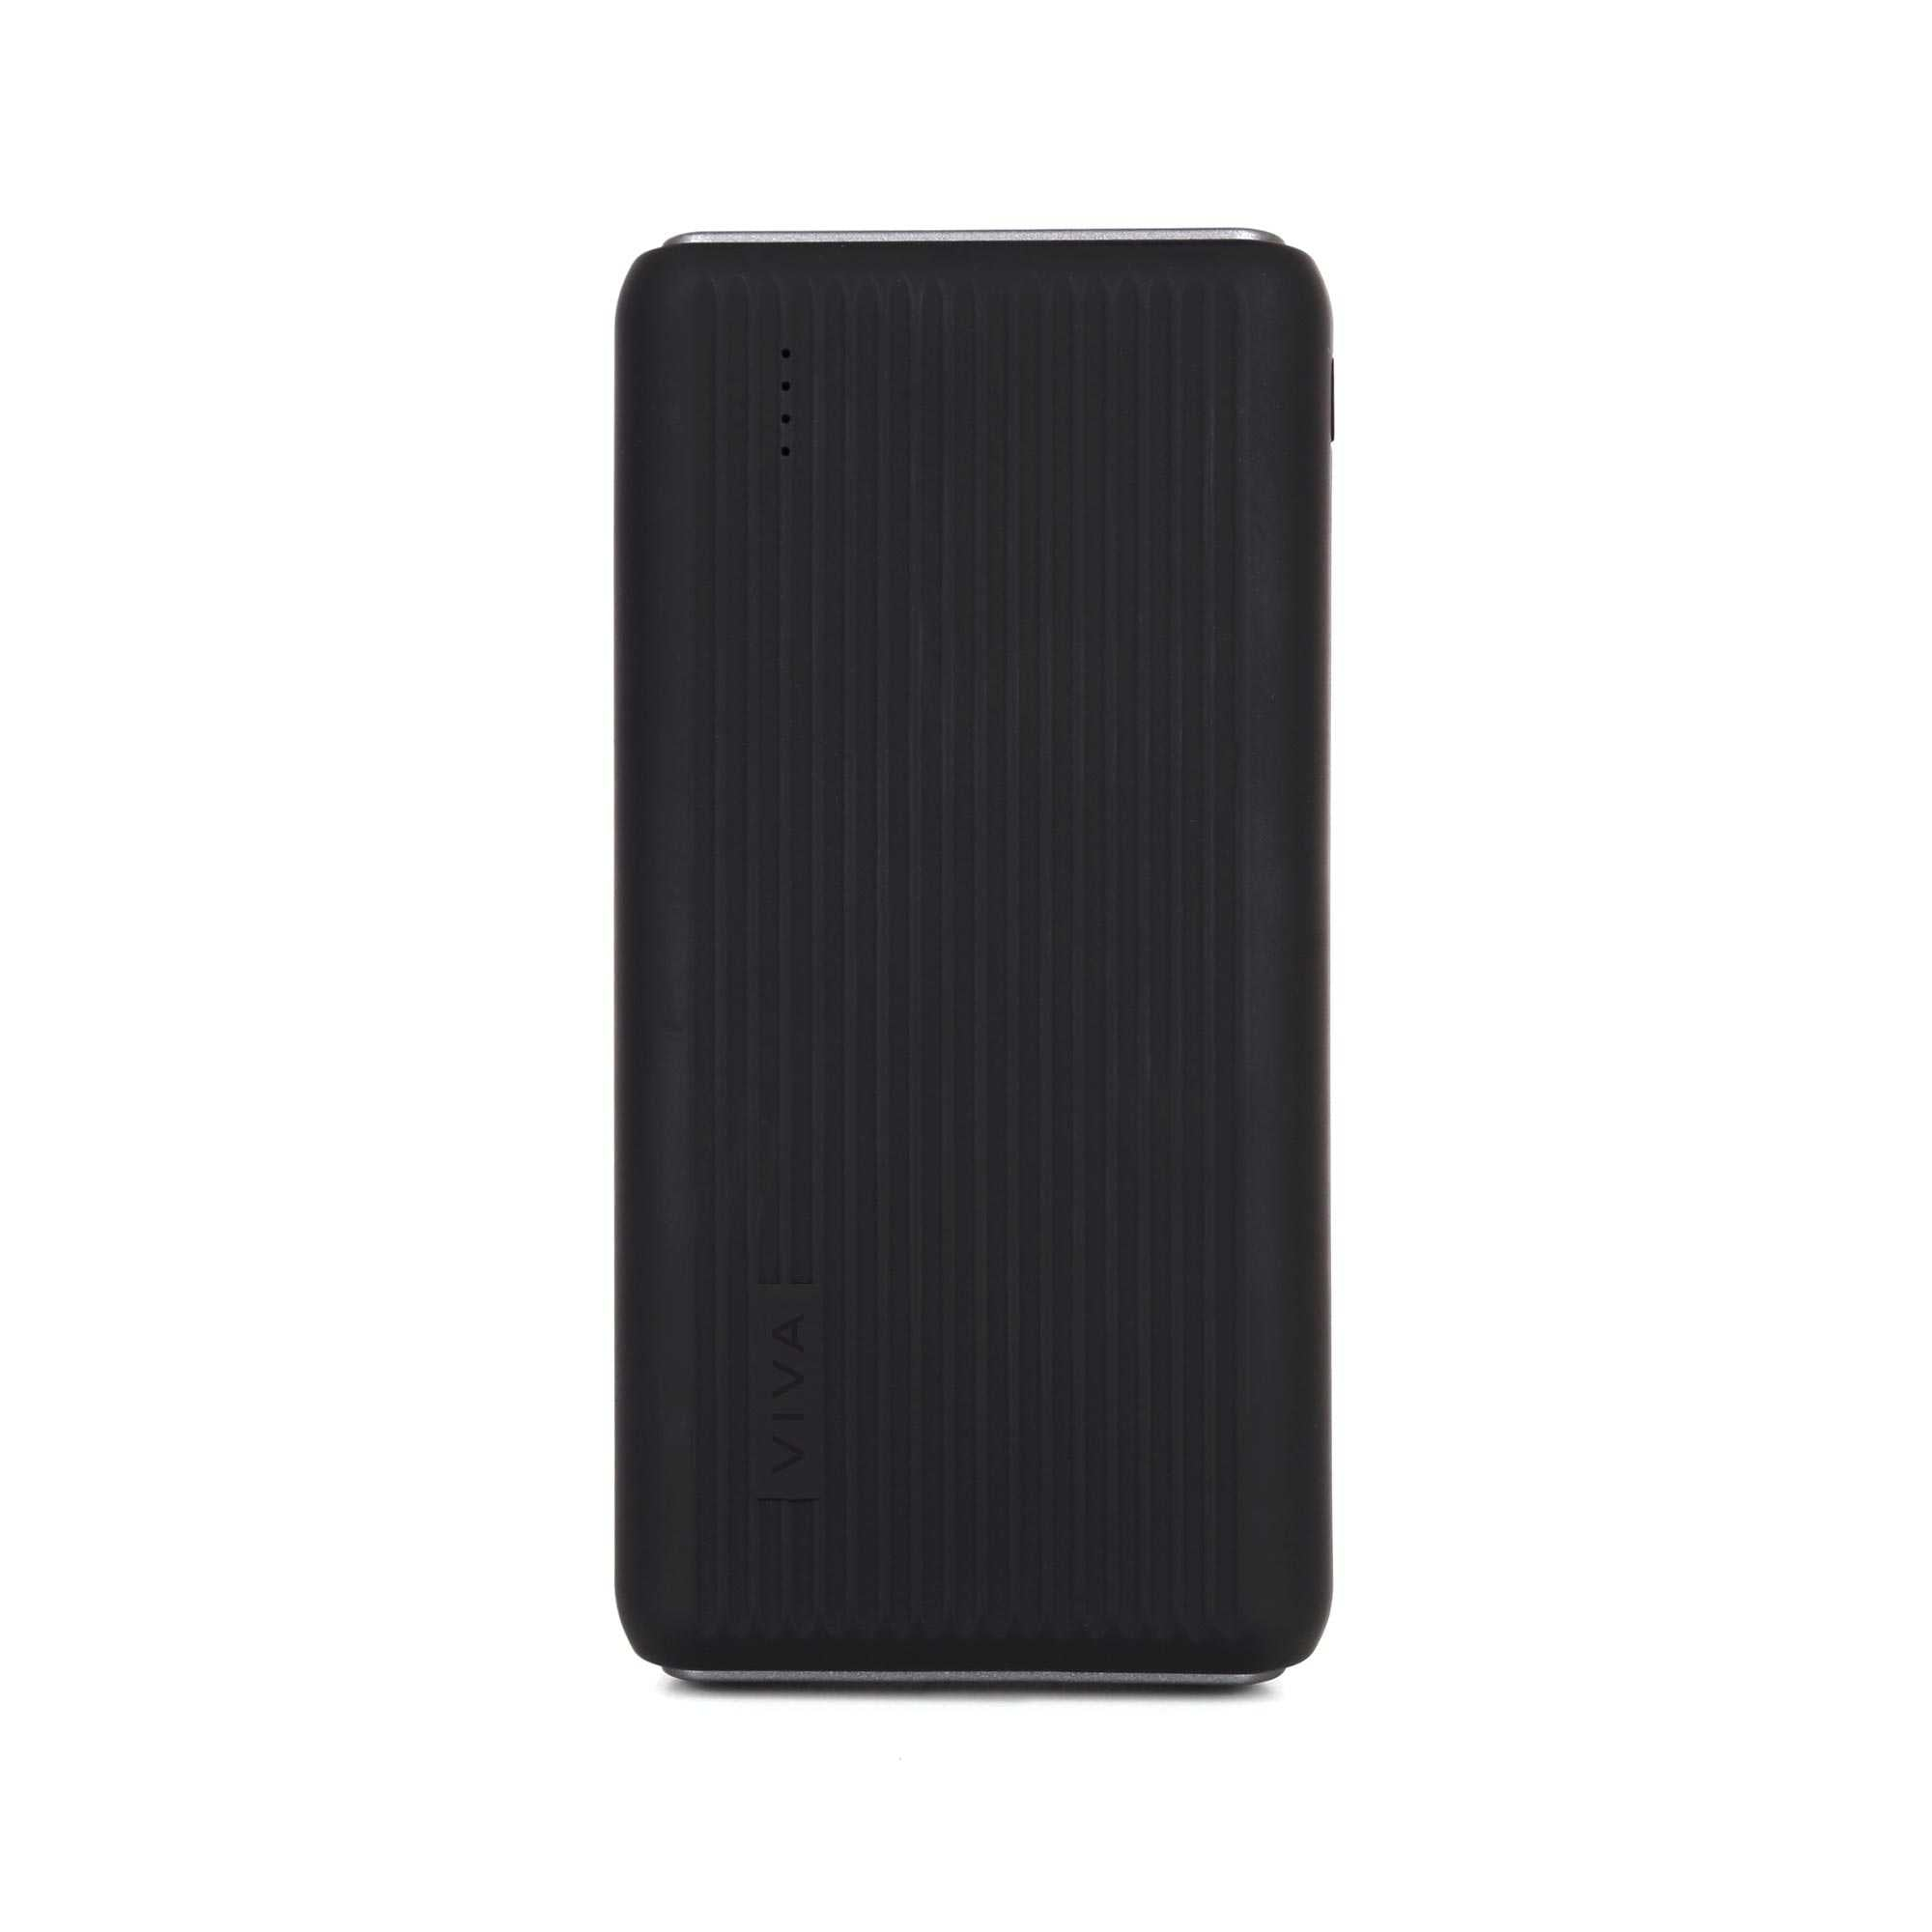 Viva Madrid Vimax Nuro PD Power Bank 20000mAh - Black